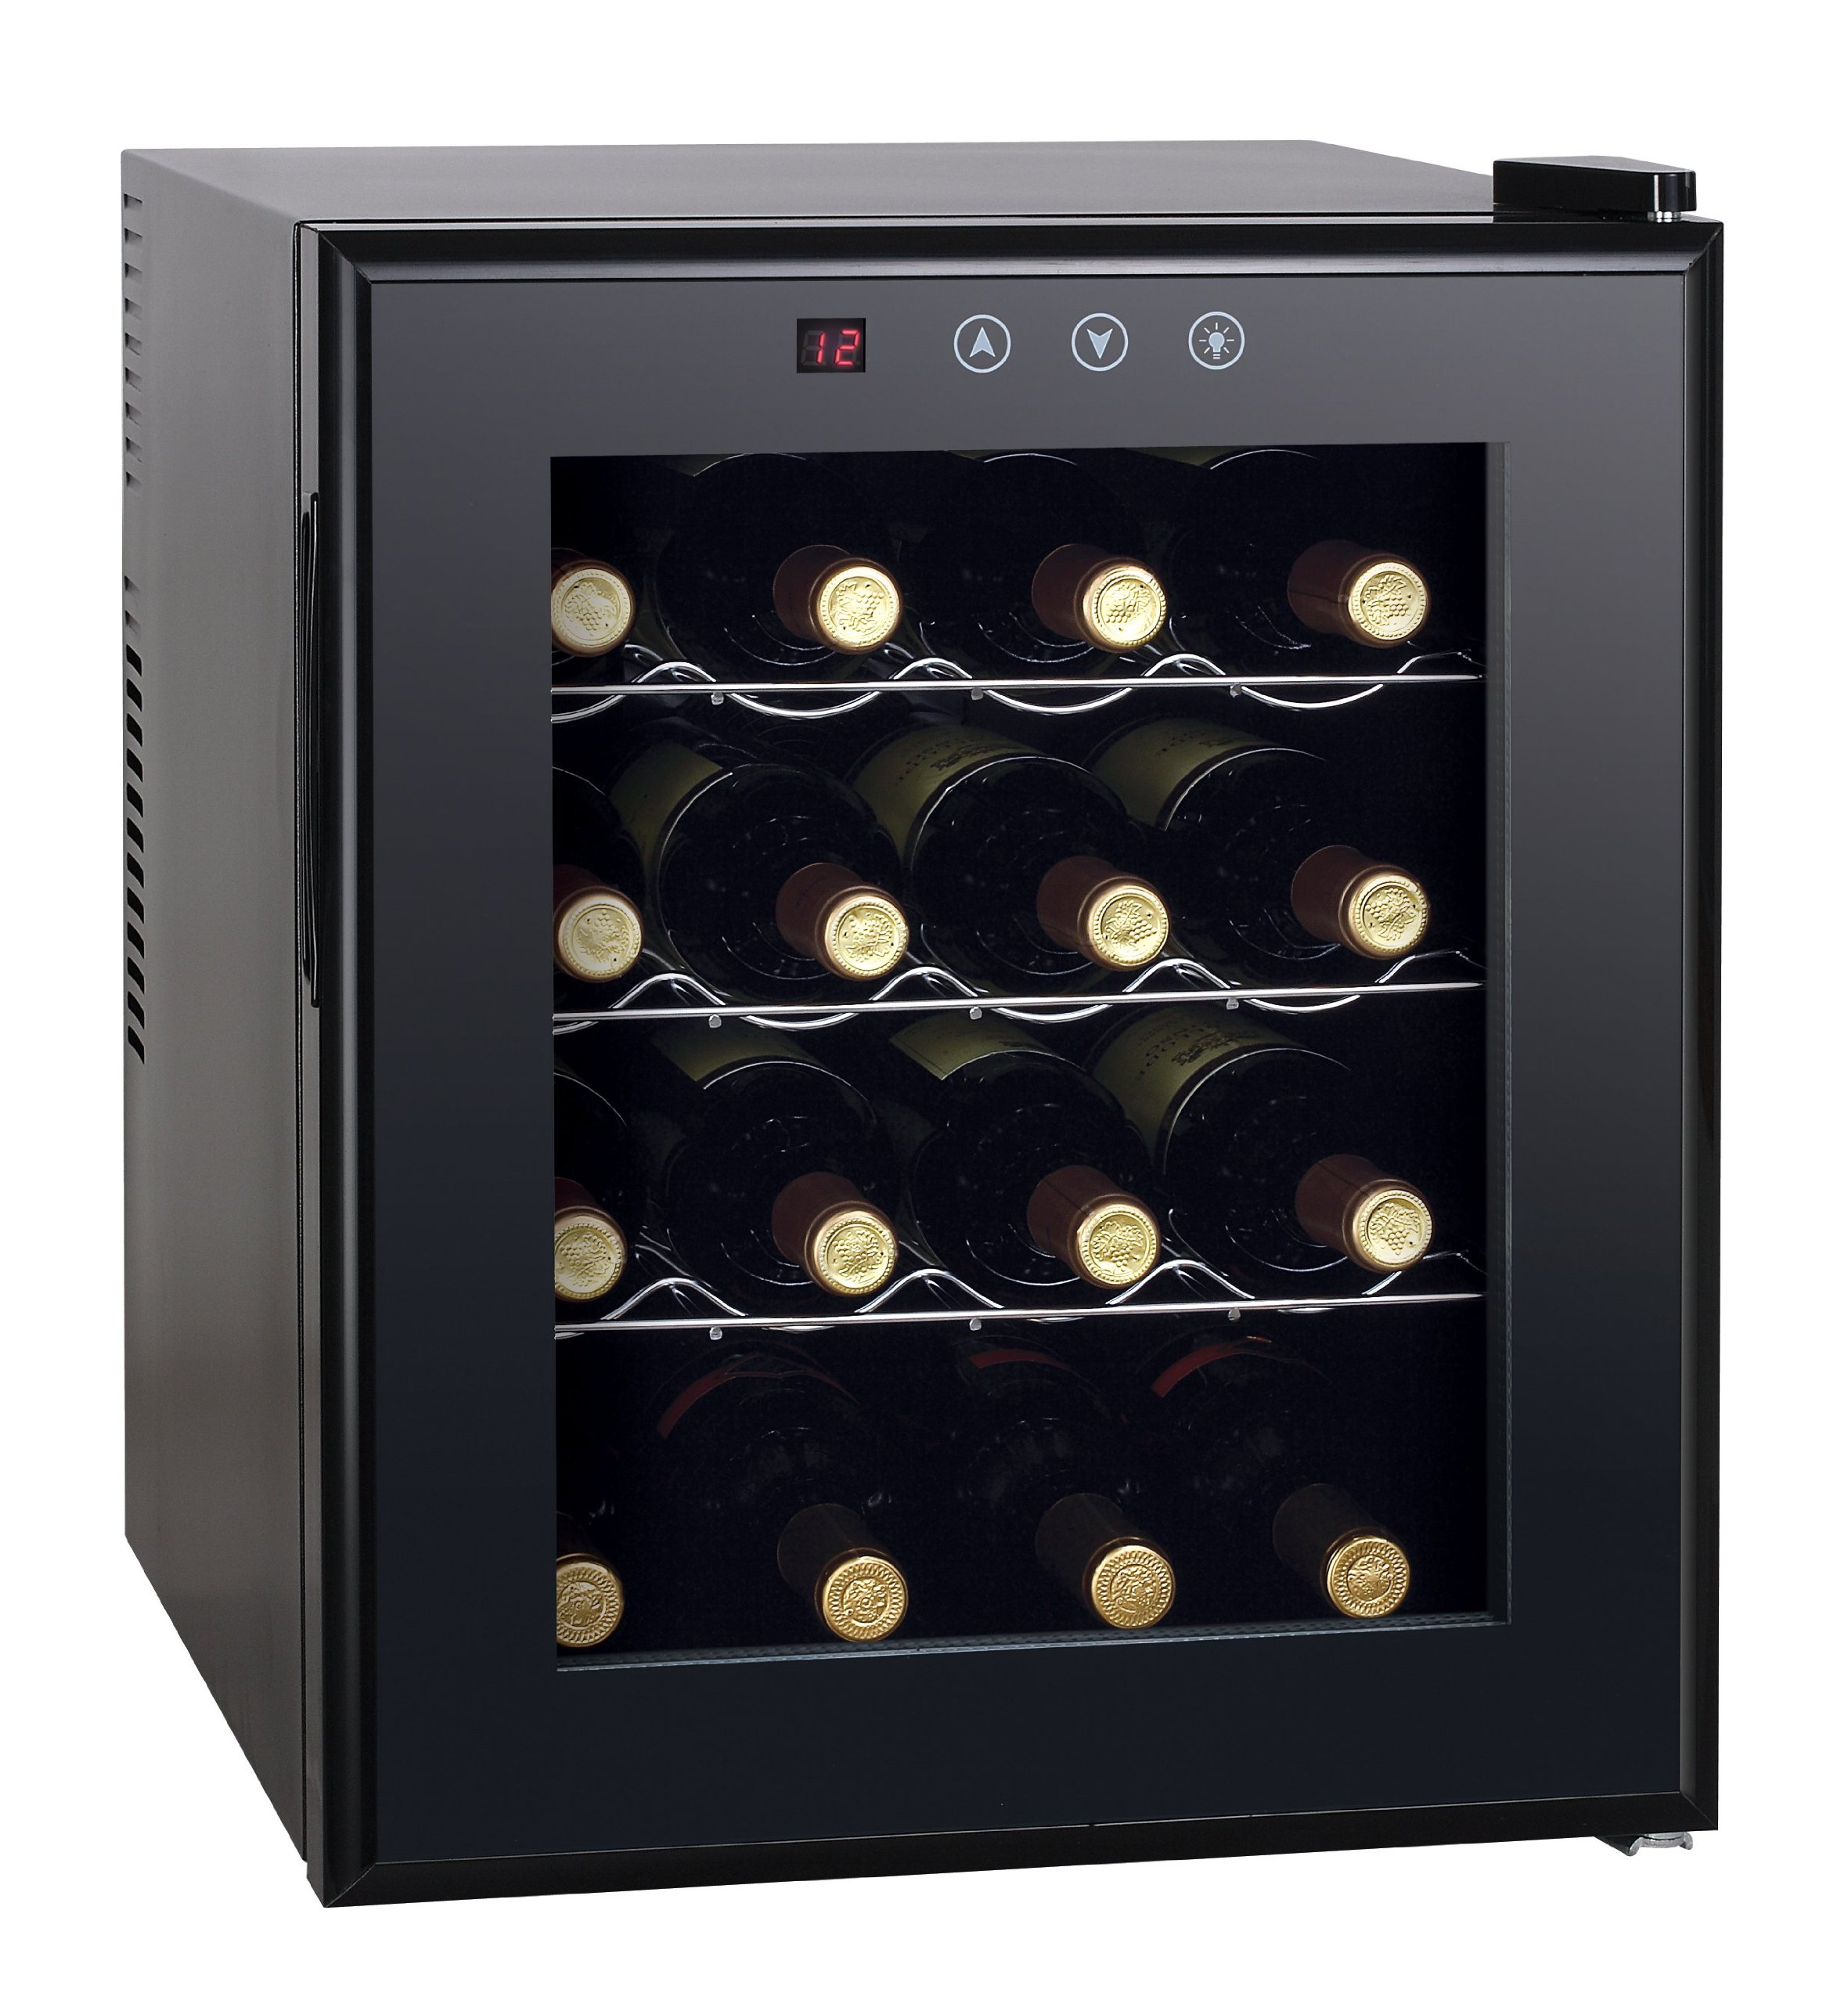 Spt Thermo-Electric Wine Cooler with Heating, 16-Bottles by SPT